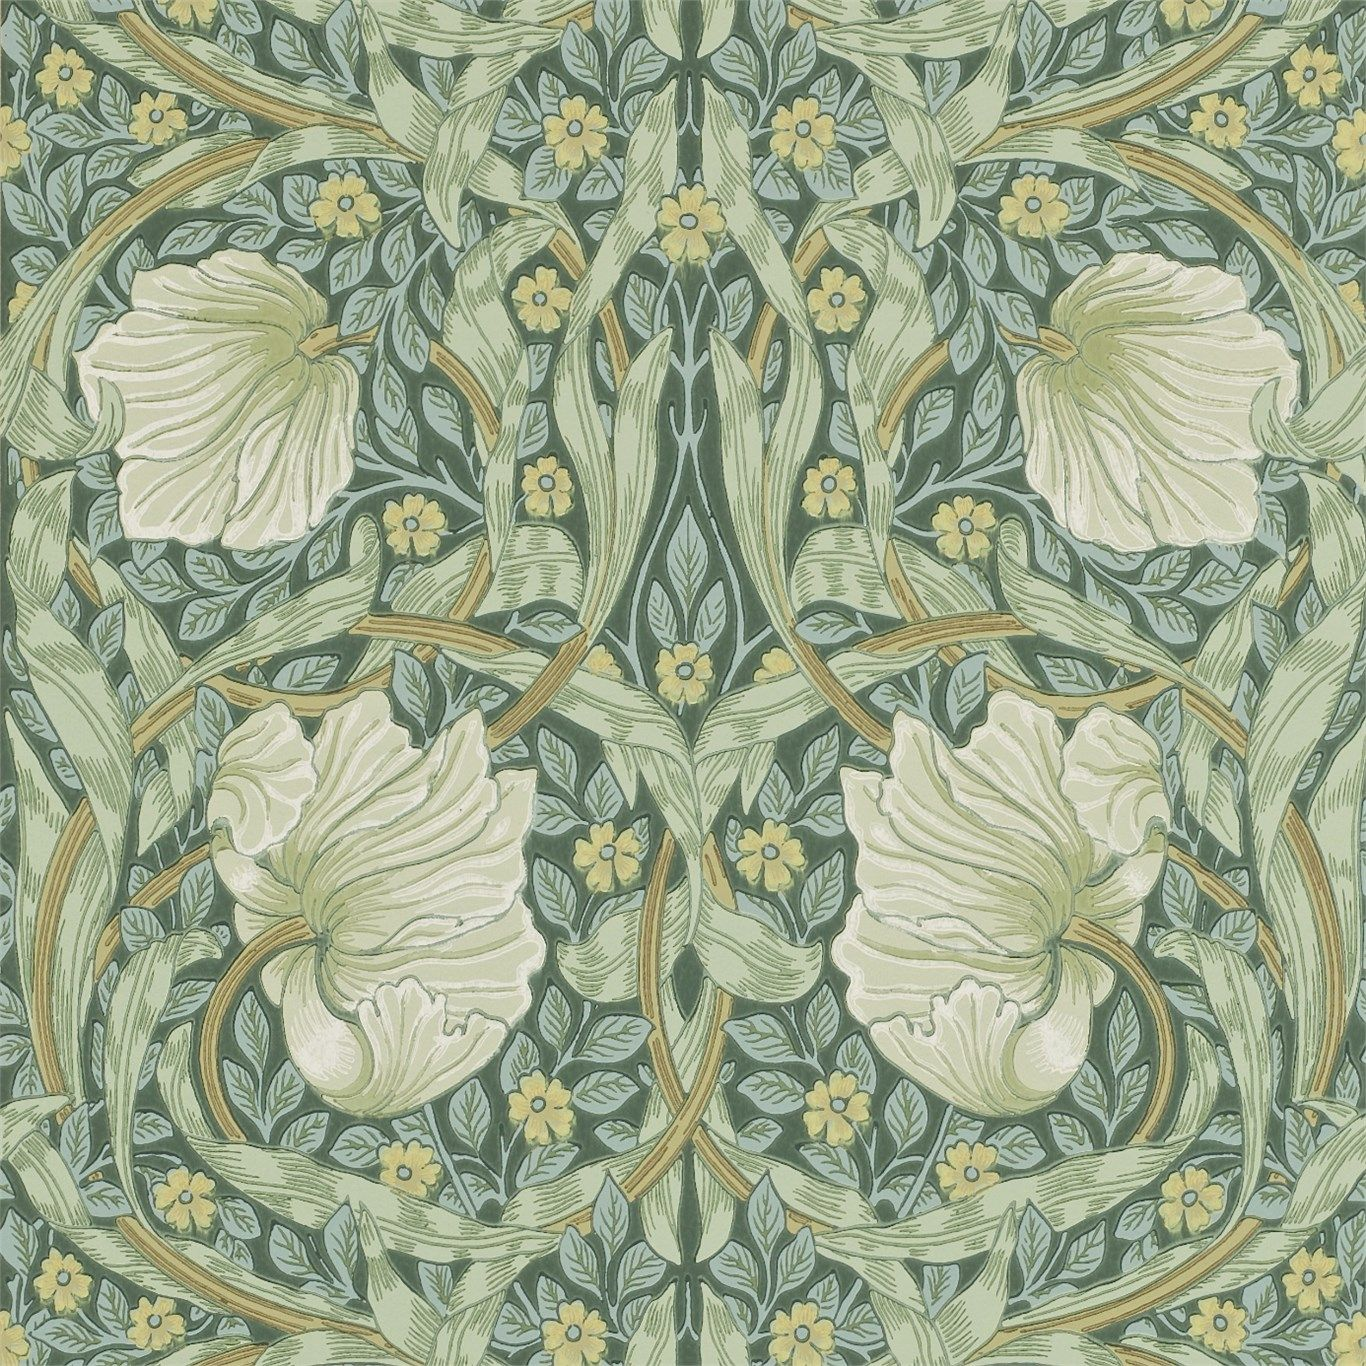 The Original Morris & Co Arts and crafts, fabrics and